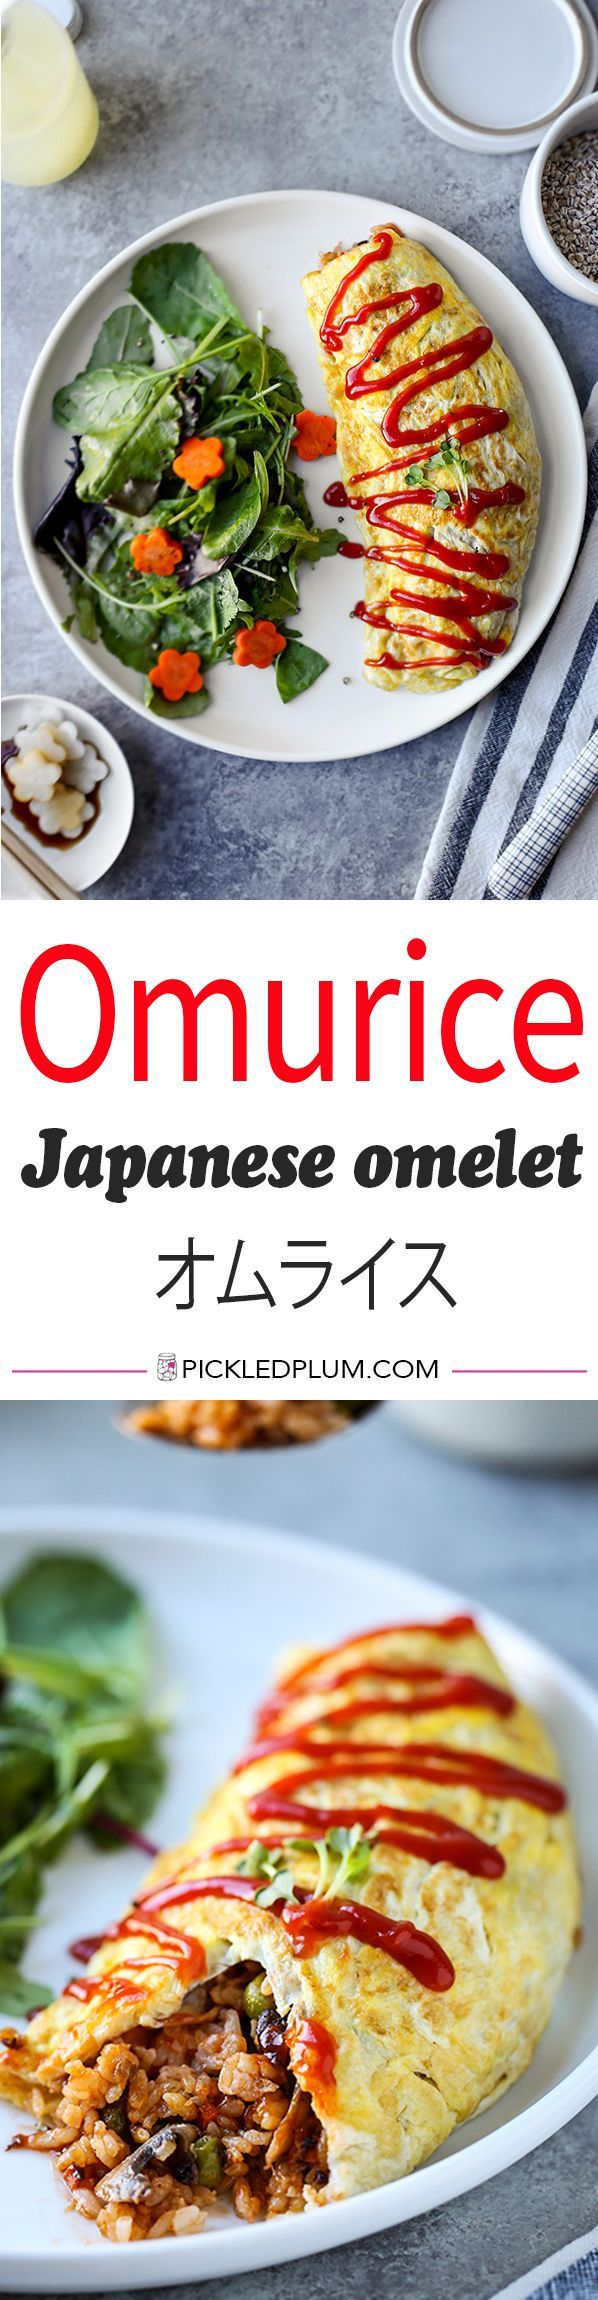 This Omurice Recipe is Japanese comfort food at its best. You can't go wrong with fried rice served inside a fluffy omelette! 20 minutes, start to finish. Japanese recipes, easy japanese recipe, homemade, omelette, fried rice | pickledplum.com